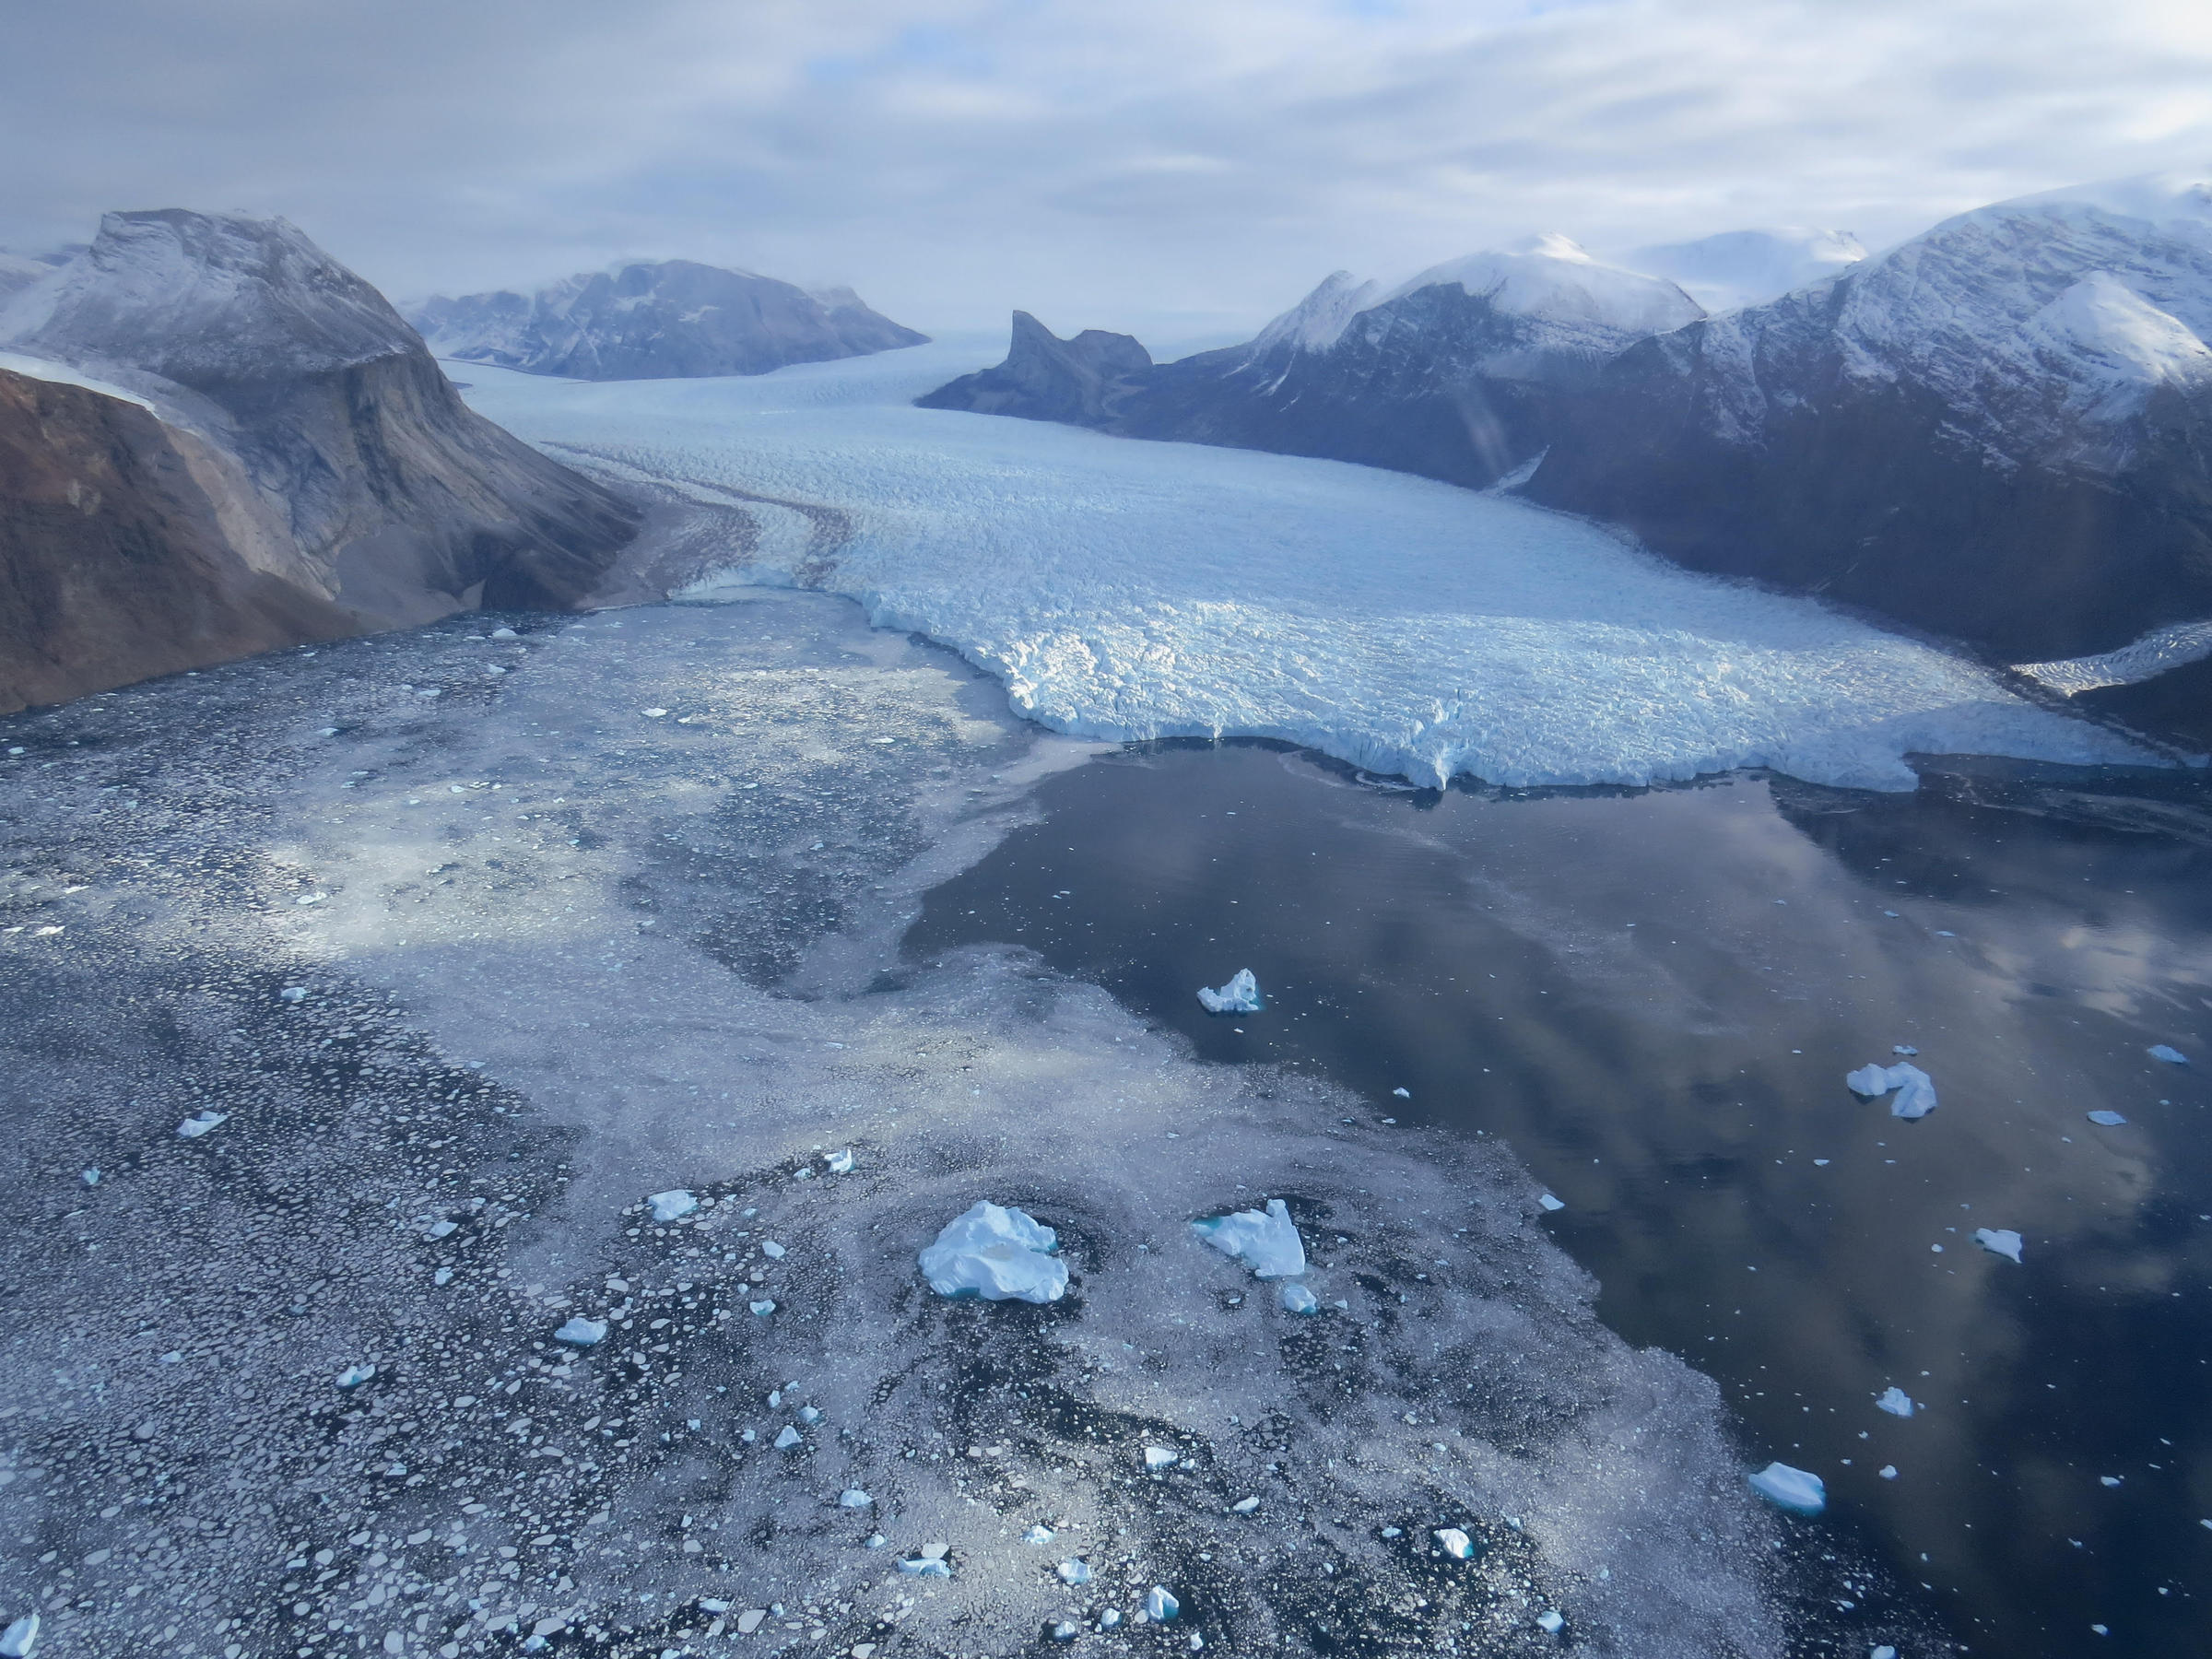 glaciers causing rise of sea level The impact of global sea level rise varies  causing local sea level rise those weaker winds curtailed ocean circulation that normally brings cooler water up from the deep  massive glaciers .